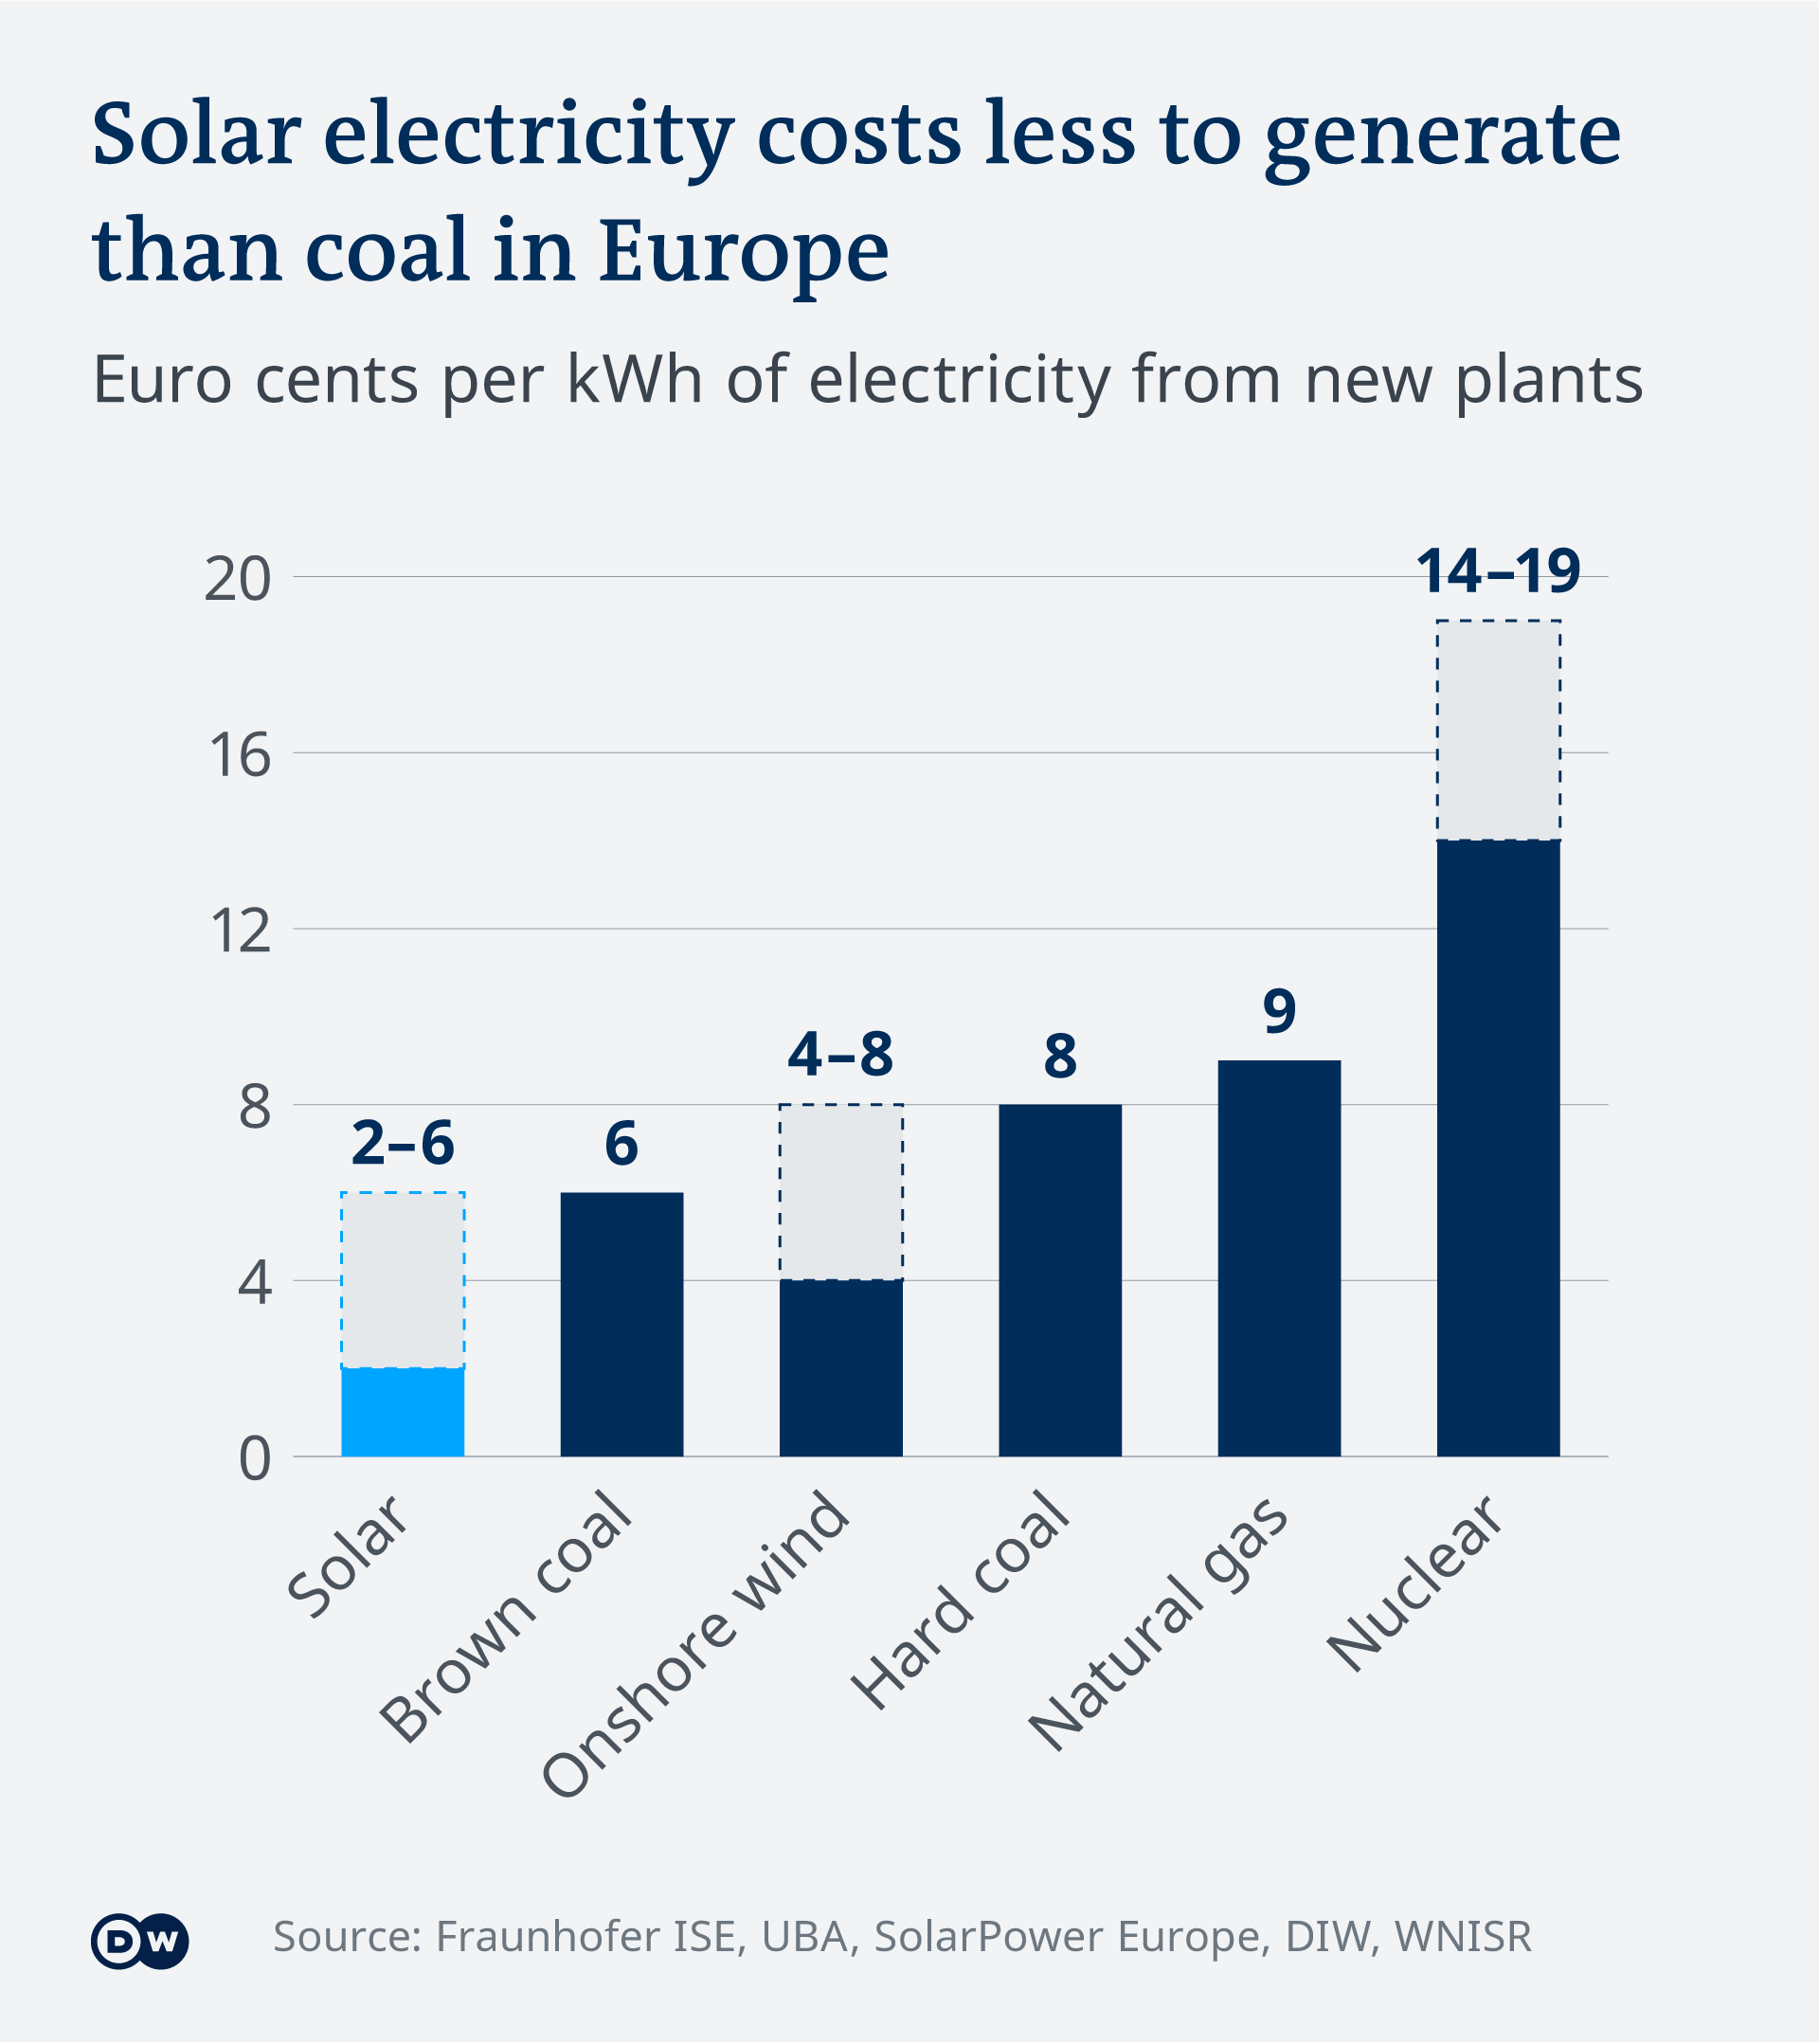 Data visualisation: Solar electricity costs less to generate than coal in Europe